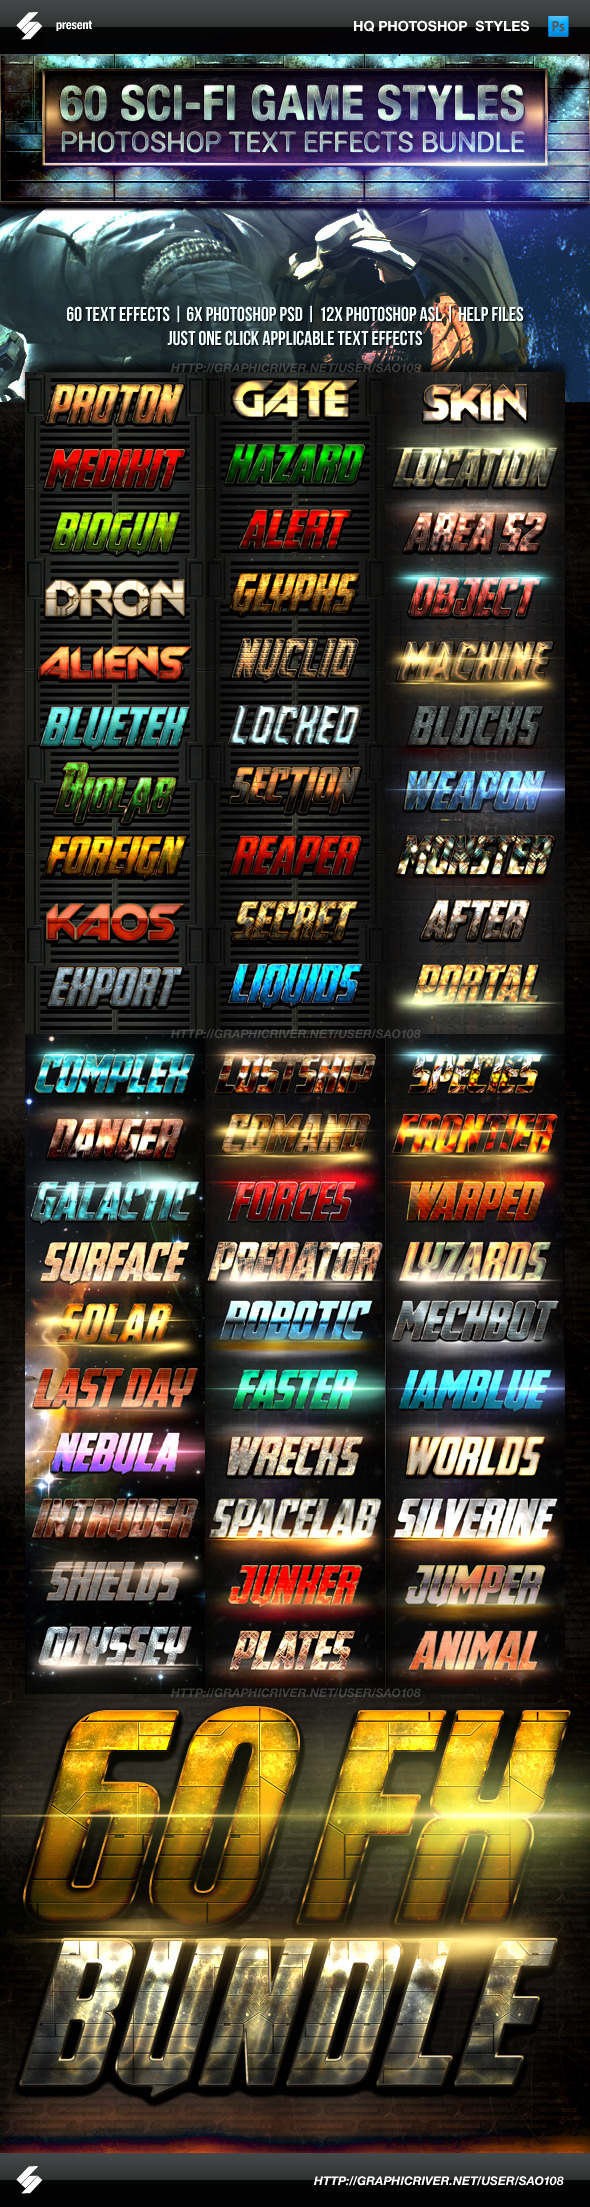 Action Sci-fi Game Style Text Effects Bundle